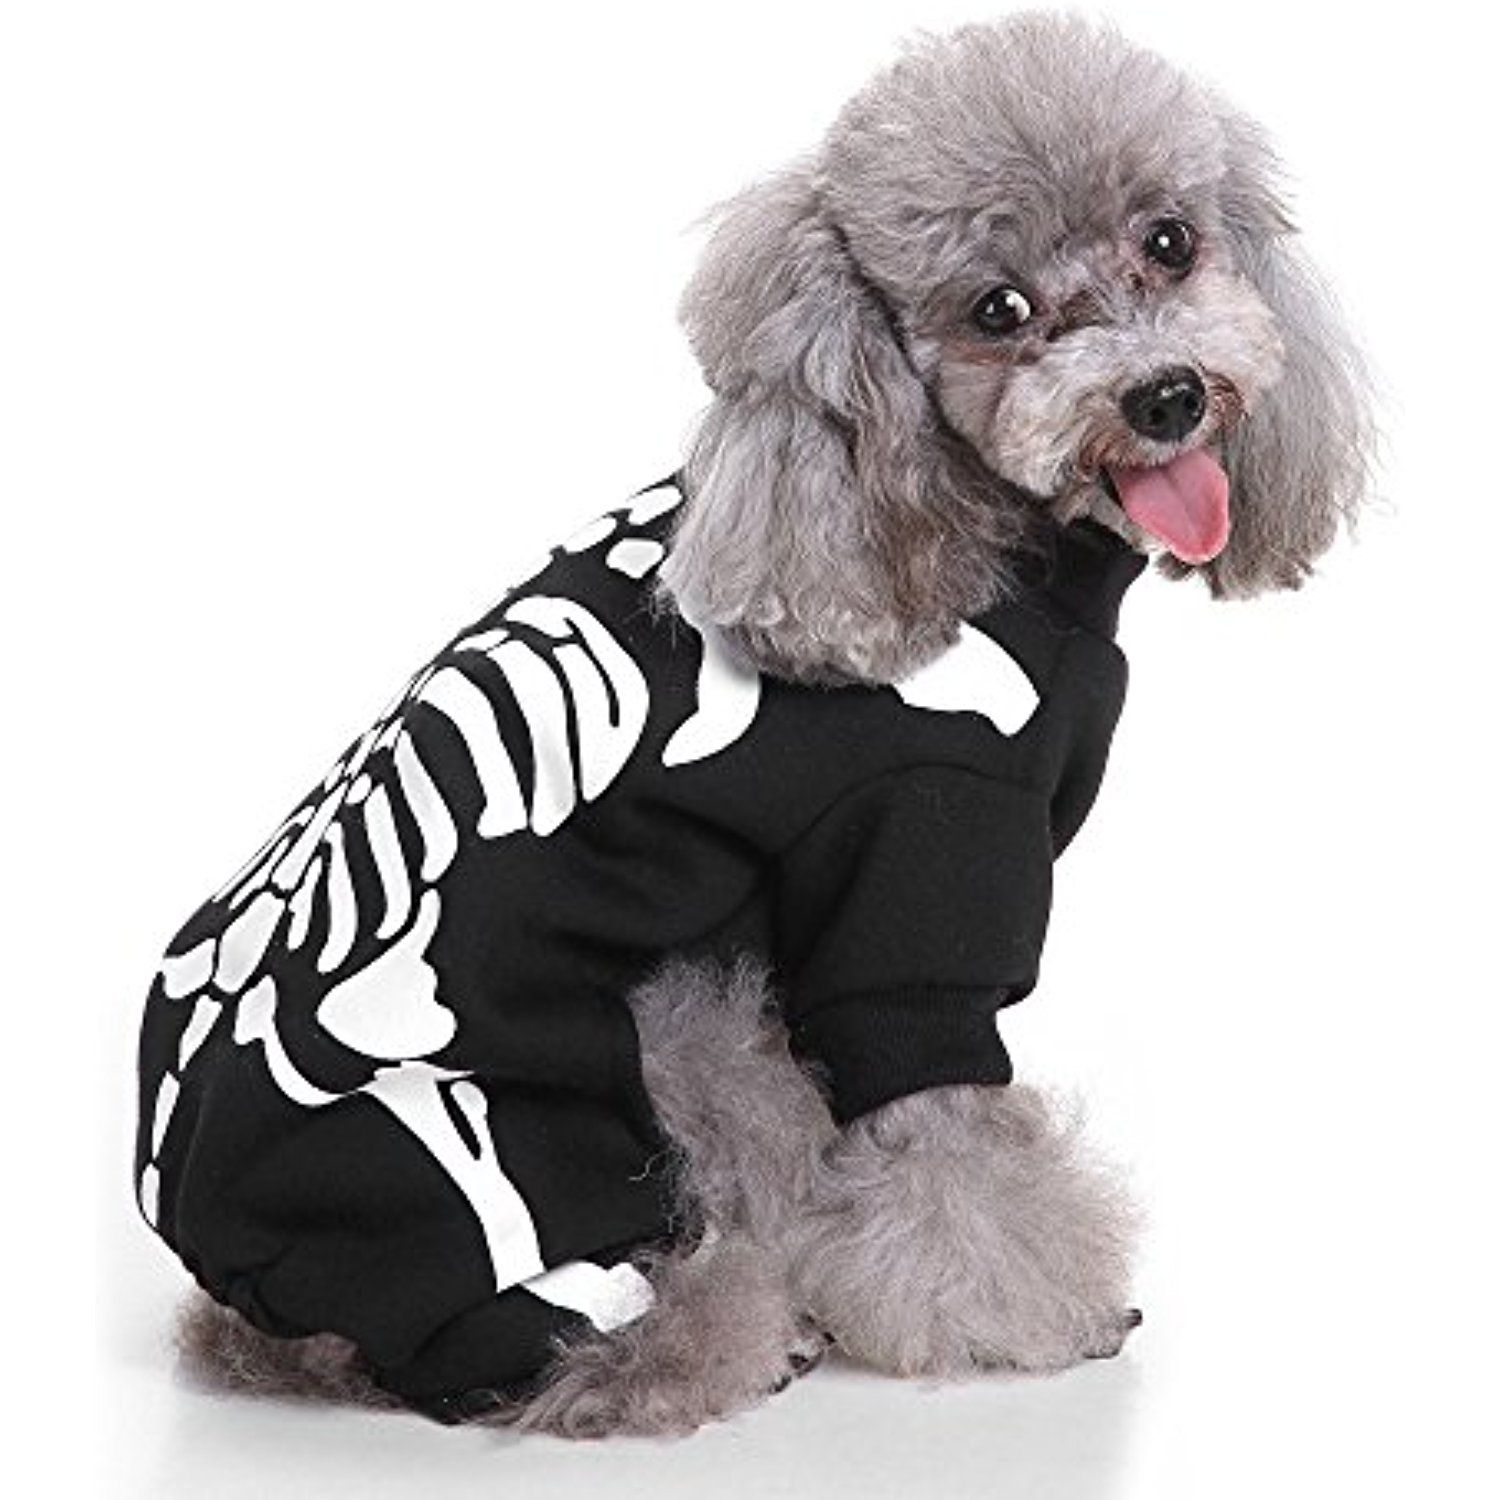 S Lifeeling Bones Dog Costume Holiday Halloween Christmas Pet Clothes Soft Comfortable Dog Clo Christmas Dog Costume Pet Halloween Costumes Halloween Pets Dogs